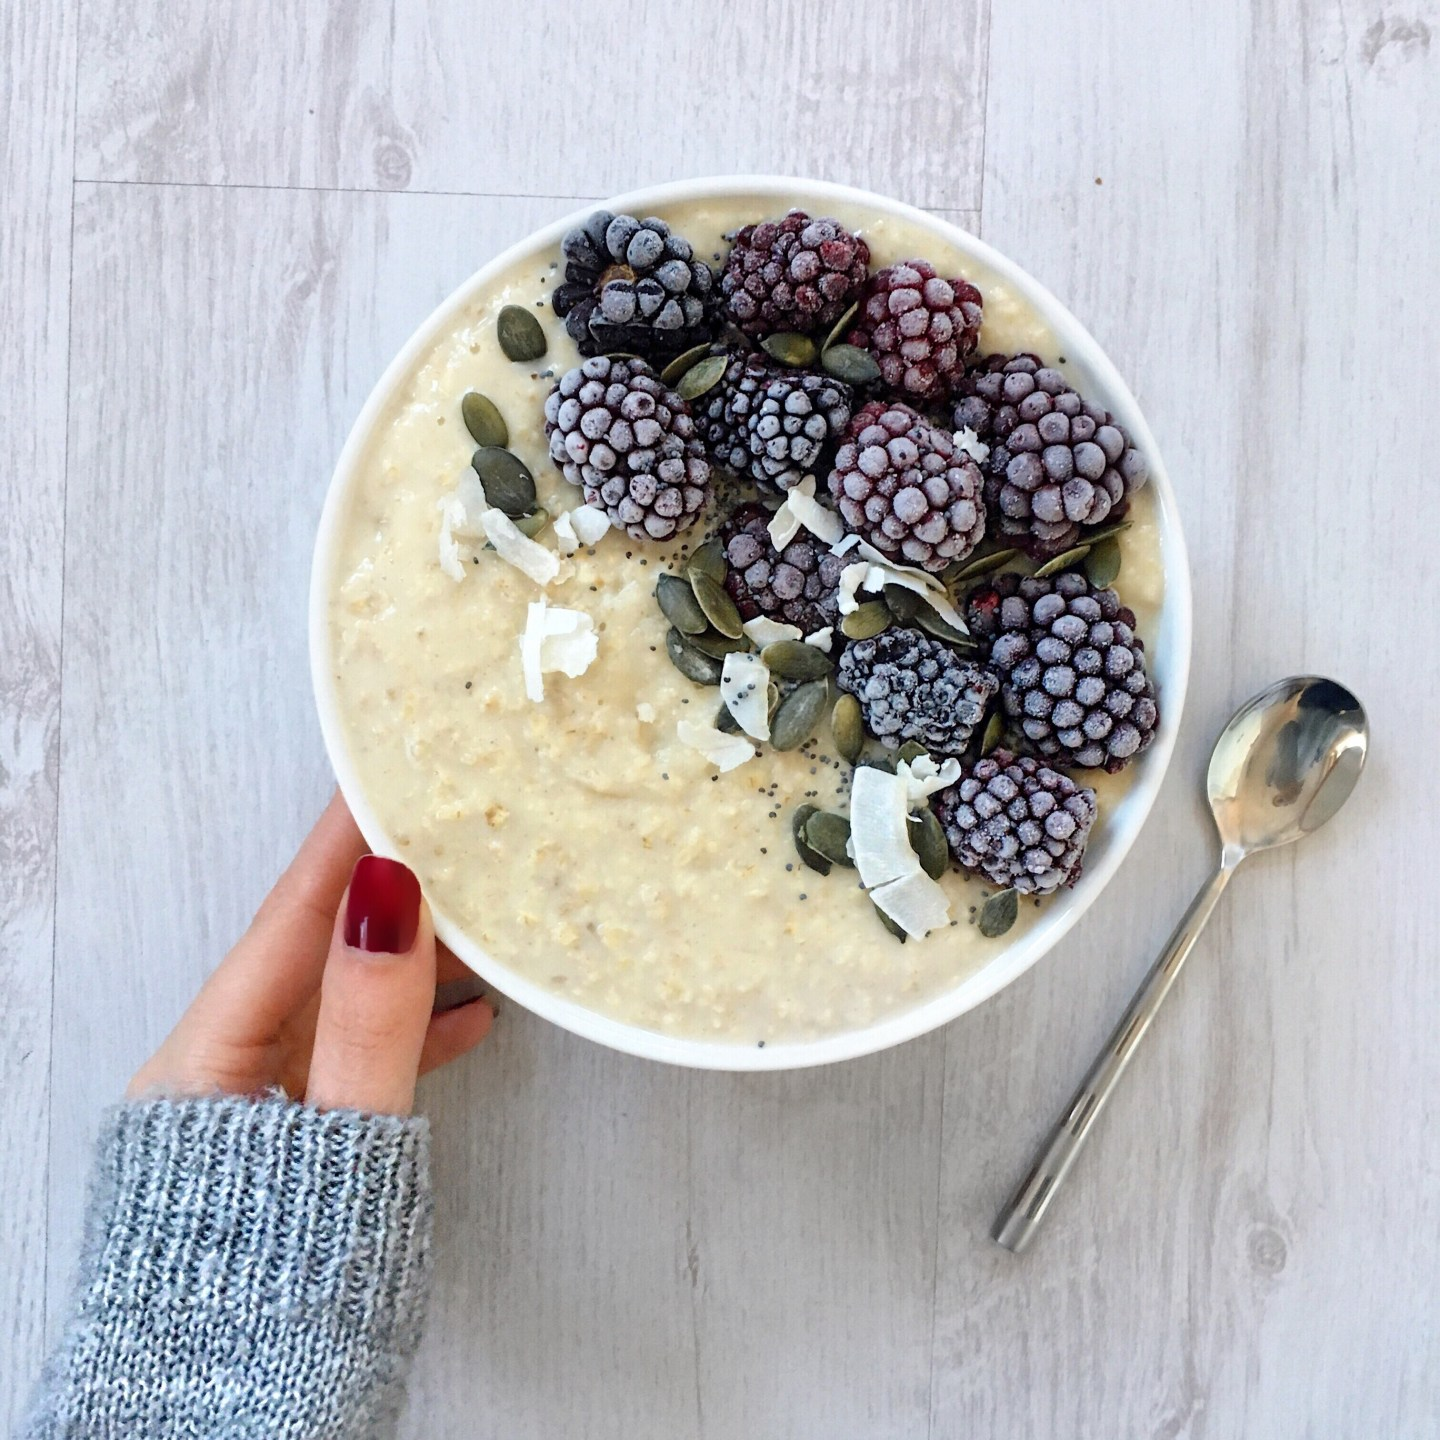 Warming and Comforting Spiced Winter Porridge